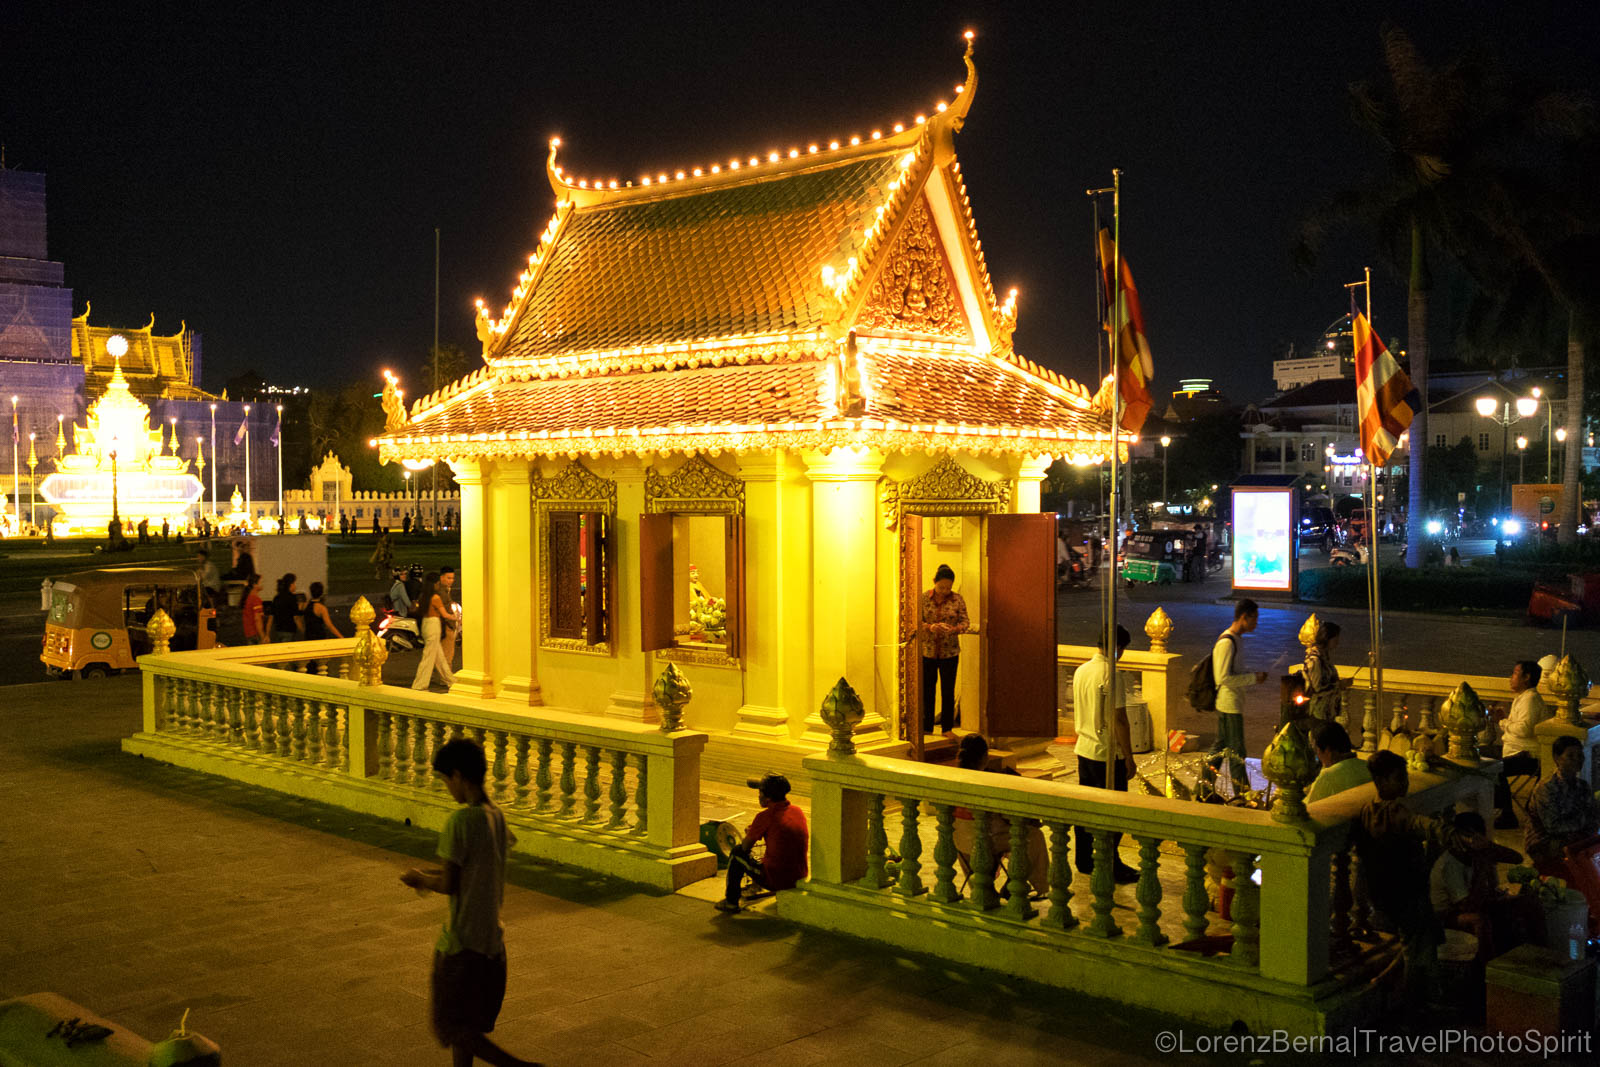 Riverside Temple in the evening lights, Phnom Penh, Cambodia